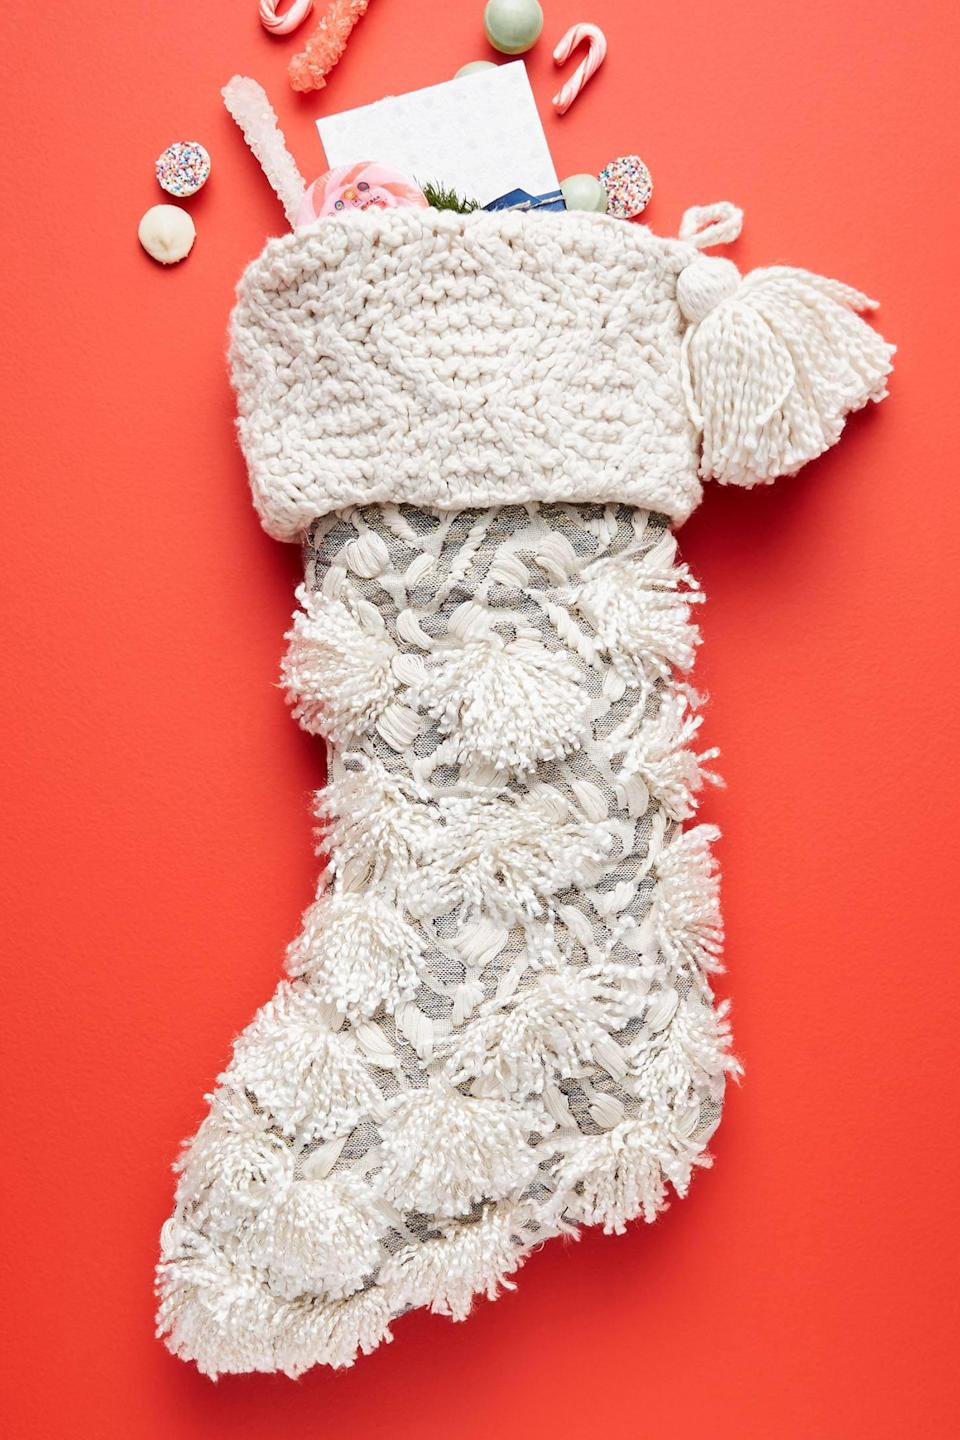 """<p>Incorporate fun texture into your holiday decor with the <a href=""""https://www.popsugar.com/buy/Sugar-Plum-Stocking-490450?p_name=Sugar%20Plum%20Stocking&retailer=anthropologie.com&pid=490450&price=48&evar1=casa%3Aus&evar9=46615300&evar98=https%3A%2F%2Fwww.popsugar.com%2Fhome%2Fphoto-gallery%2F46615300%2Fimage%2F46615320%2FSugar-Plum-Stocking&list1=shopping%2Canthropologie%2Choliday%2Cchristmas%2Cchristmas%20decorations%2Choliday%20decor%2Chome%20shopping&prop13=mobile&pdata=1"""" rel=""""nofollow noopener"""" class=""""link rapid-noclick-resp"""" target=""""_blank"""" data-ylk=""""slk:Sugar Plum Stocking"""">Sugar Plum Stocking</a> ($48).</p>"""